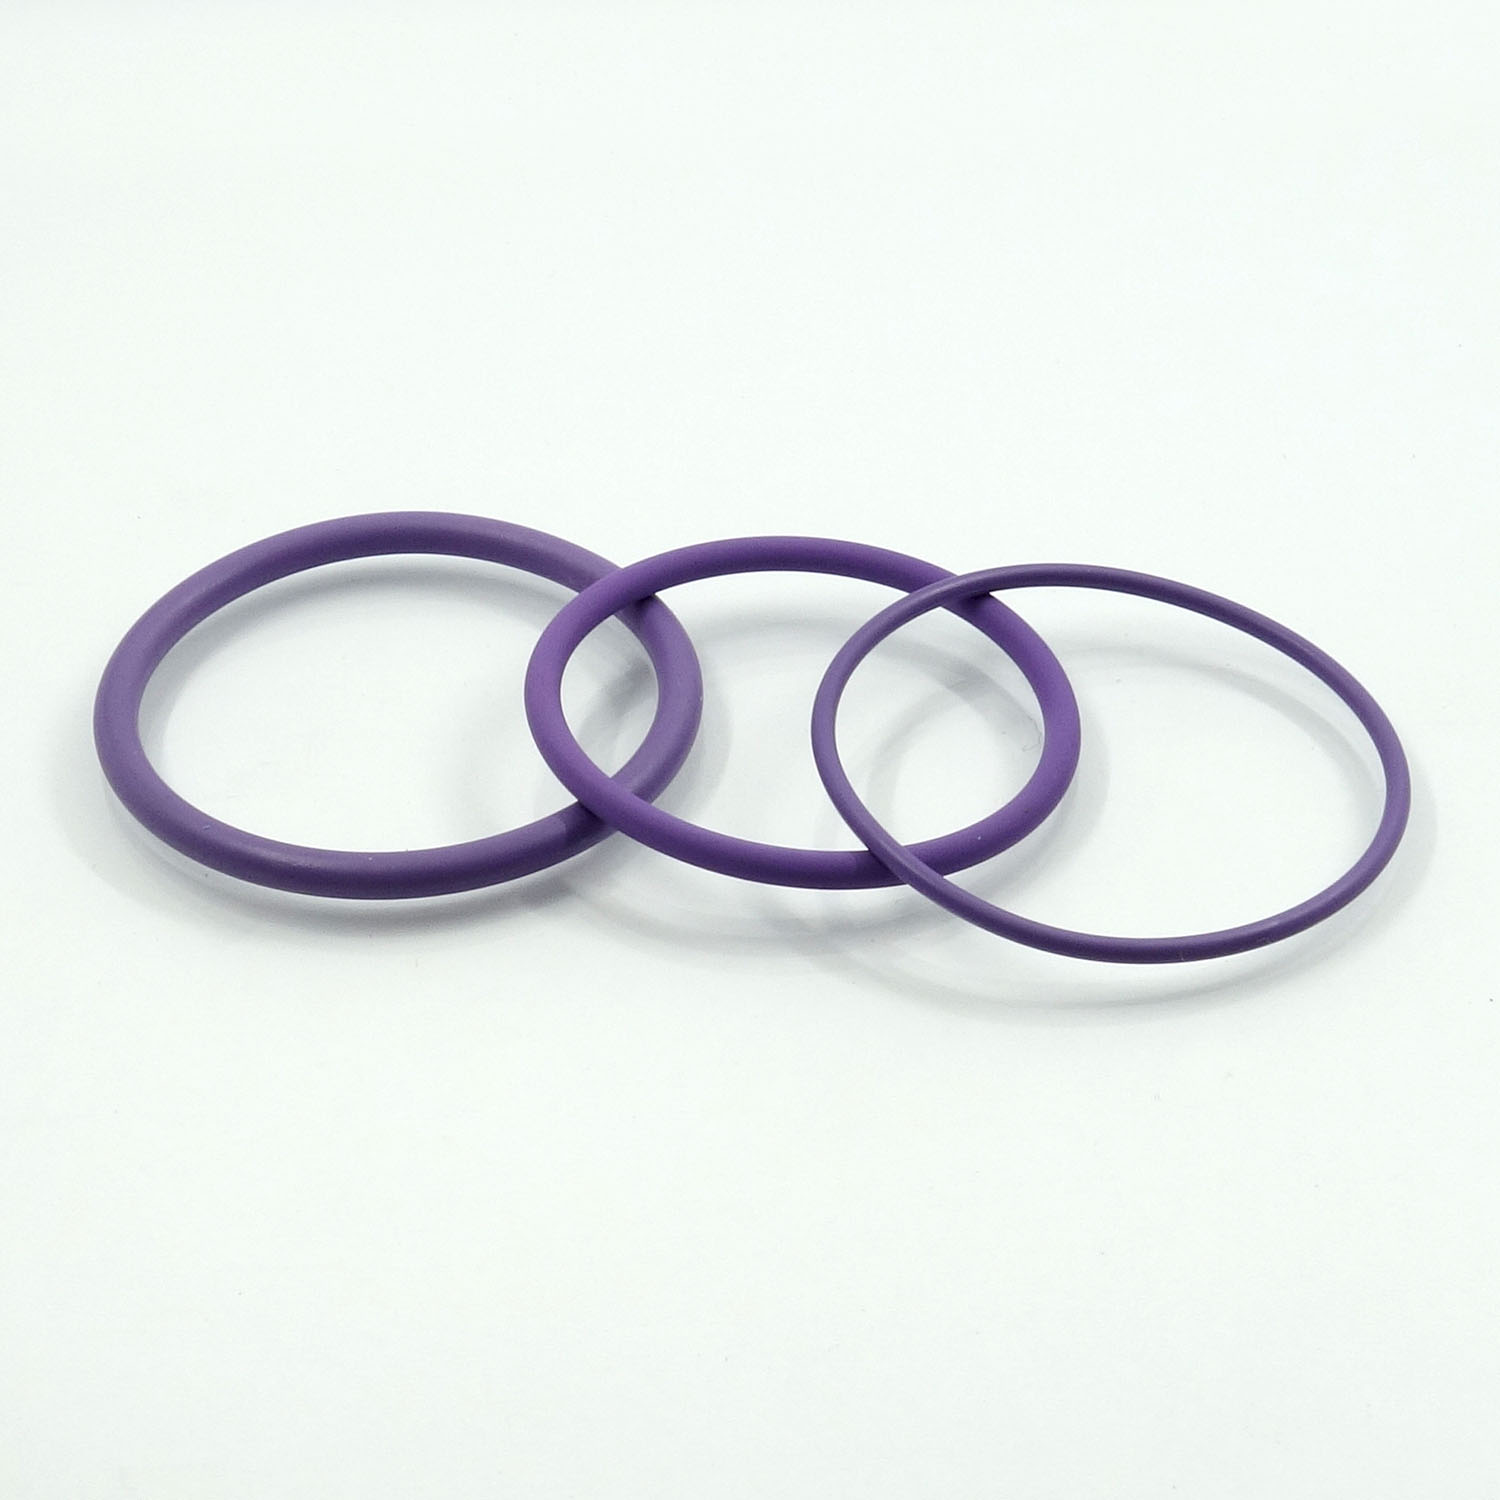 EXTERNAL GASKET KIT REDAT